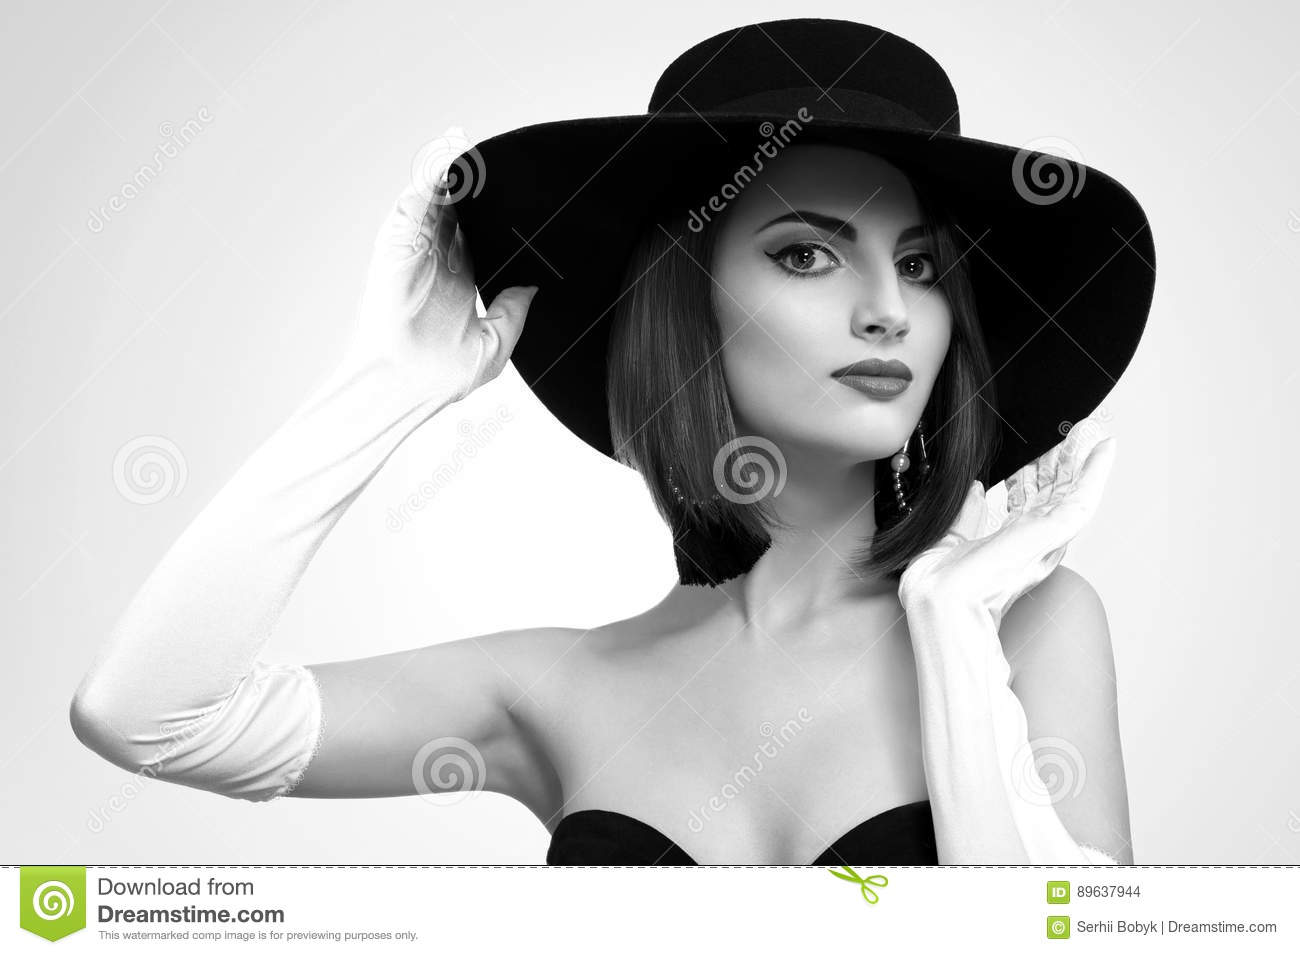 Black and white portrait of a stunning elegant woman in a black dress wearing a hat and gloves posing gracefully fashion modeling stylish retro vintage